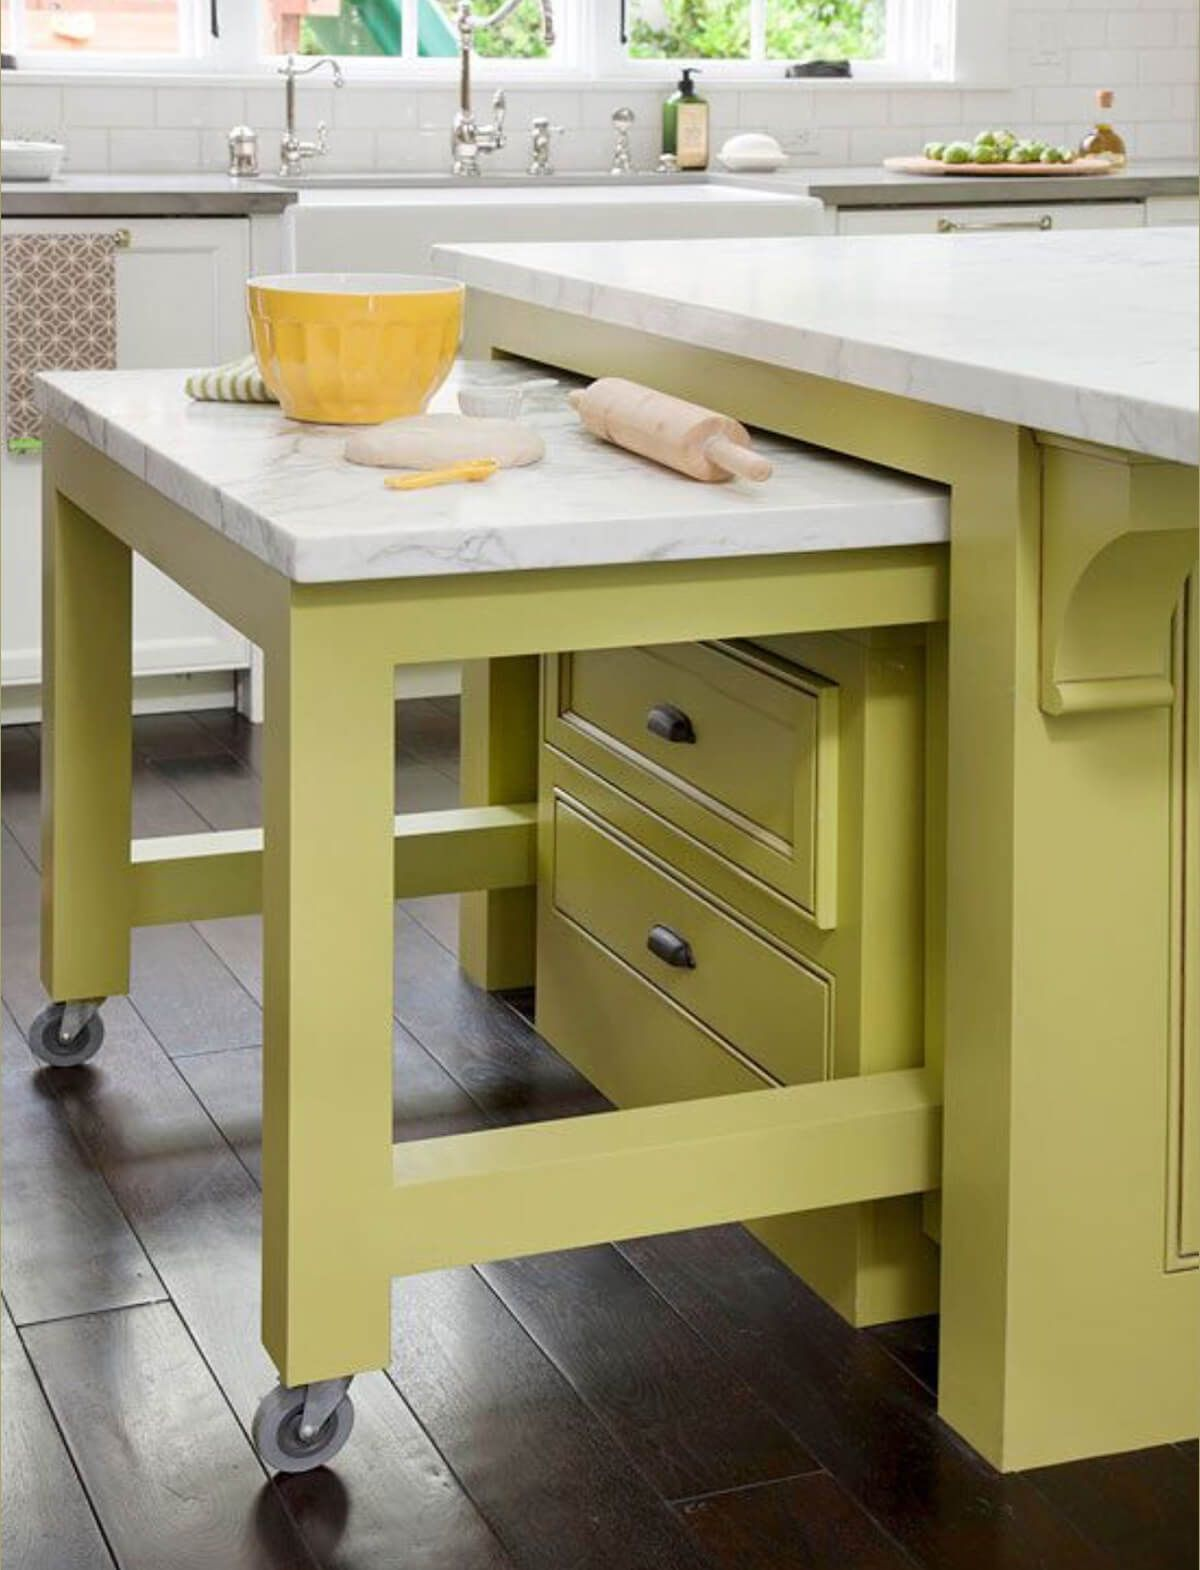 40 Smart Space Saving Ideas To Help You Organize Your Home Attractively Tiny House Kitchen Kitchen Remodel Pictures Kitchen Remodel